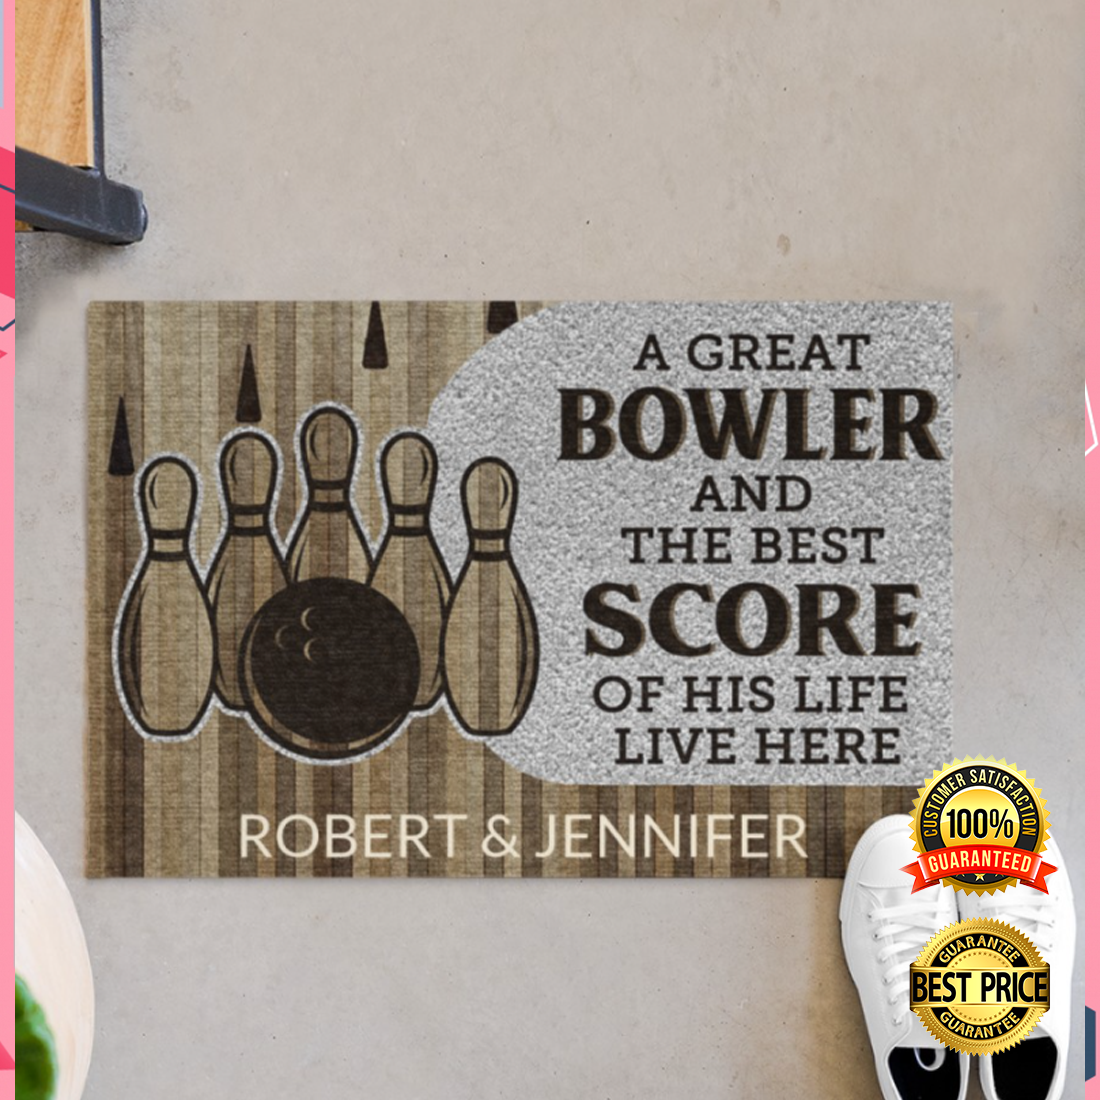 PERSONALIZED A GREAT BOWLER AND THE BEST SCORE OF HIS LIFE LIVE HERE DOORMAT 4